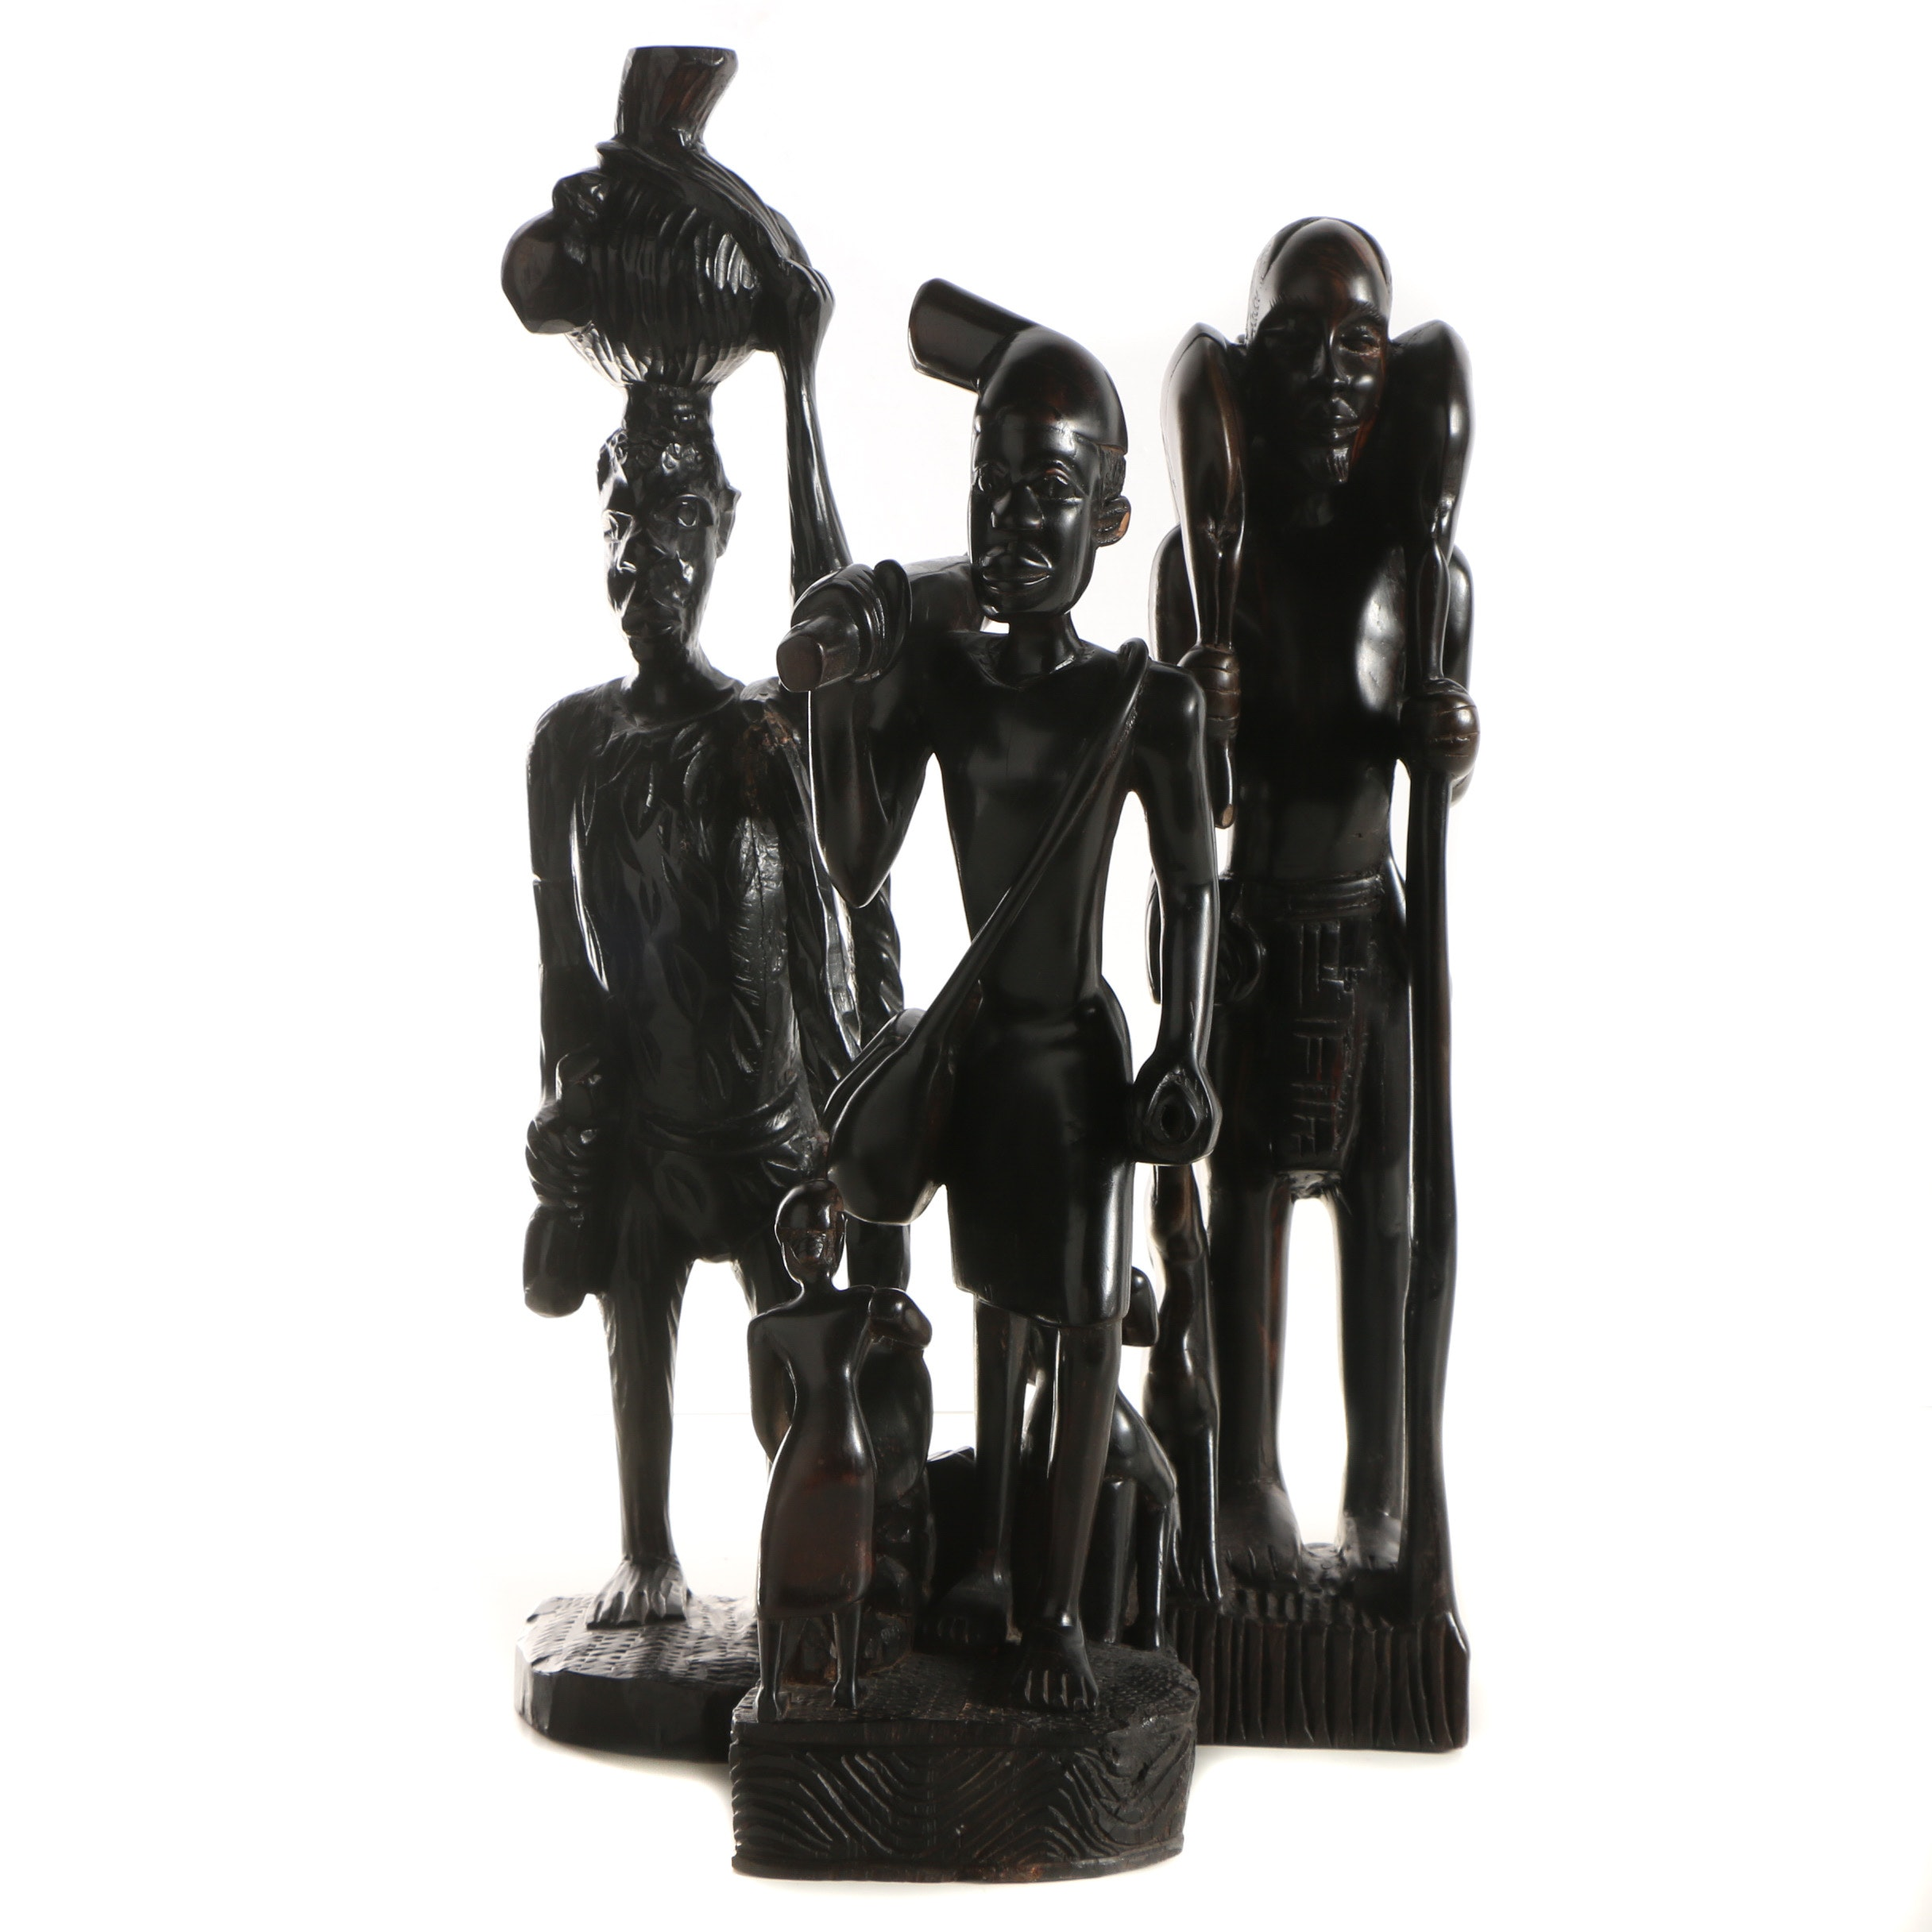 Three Carved Wooden Figurative Sculptures